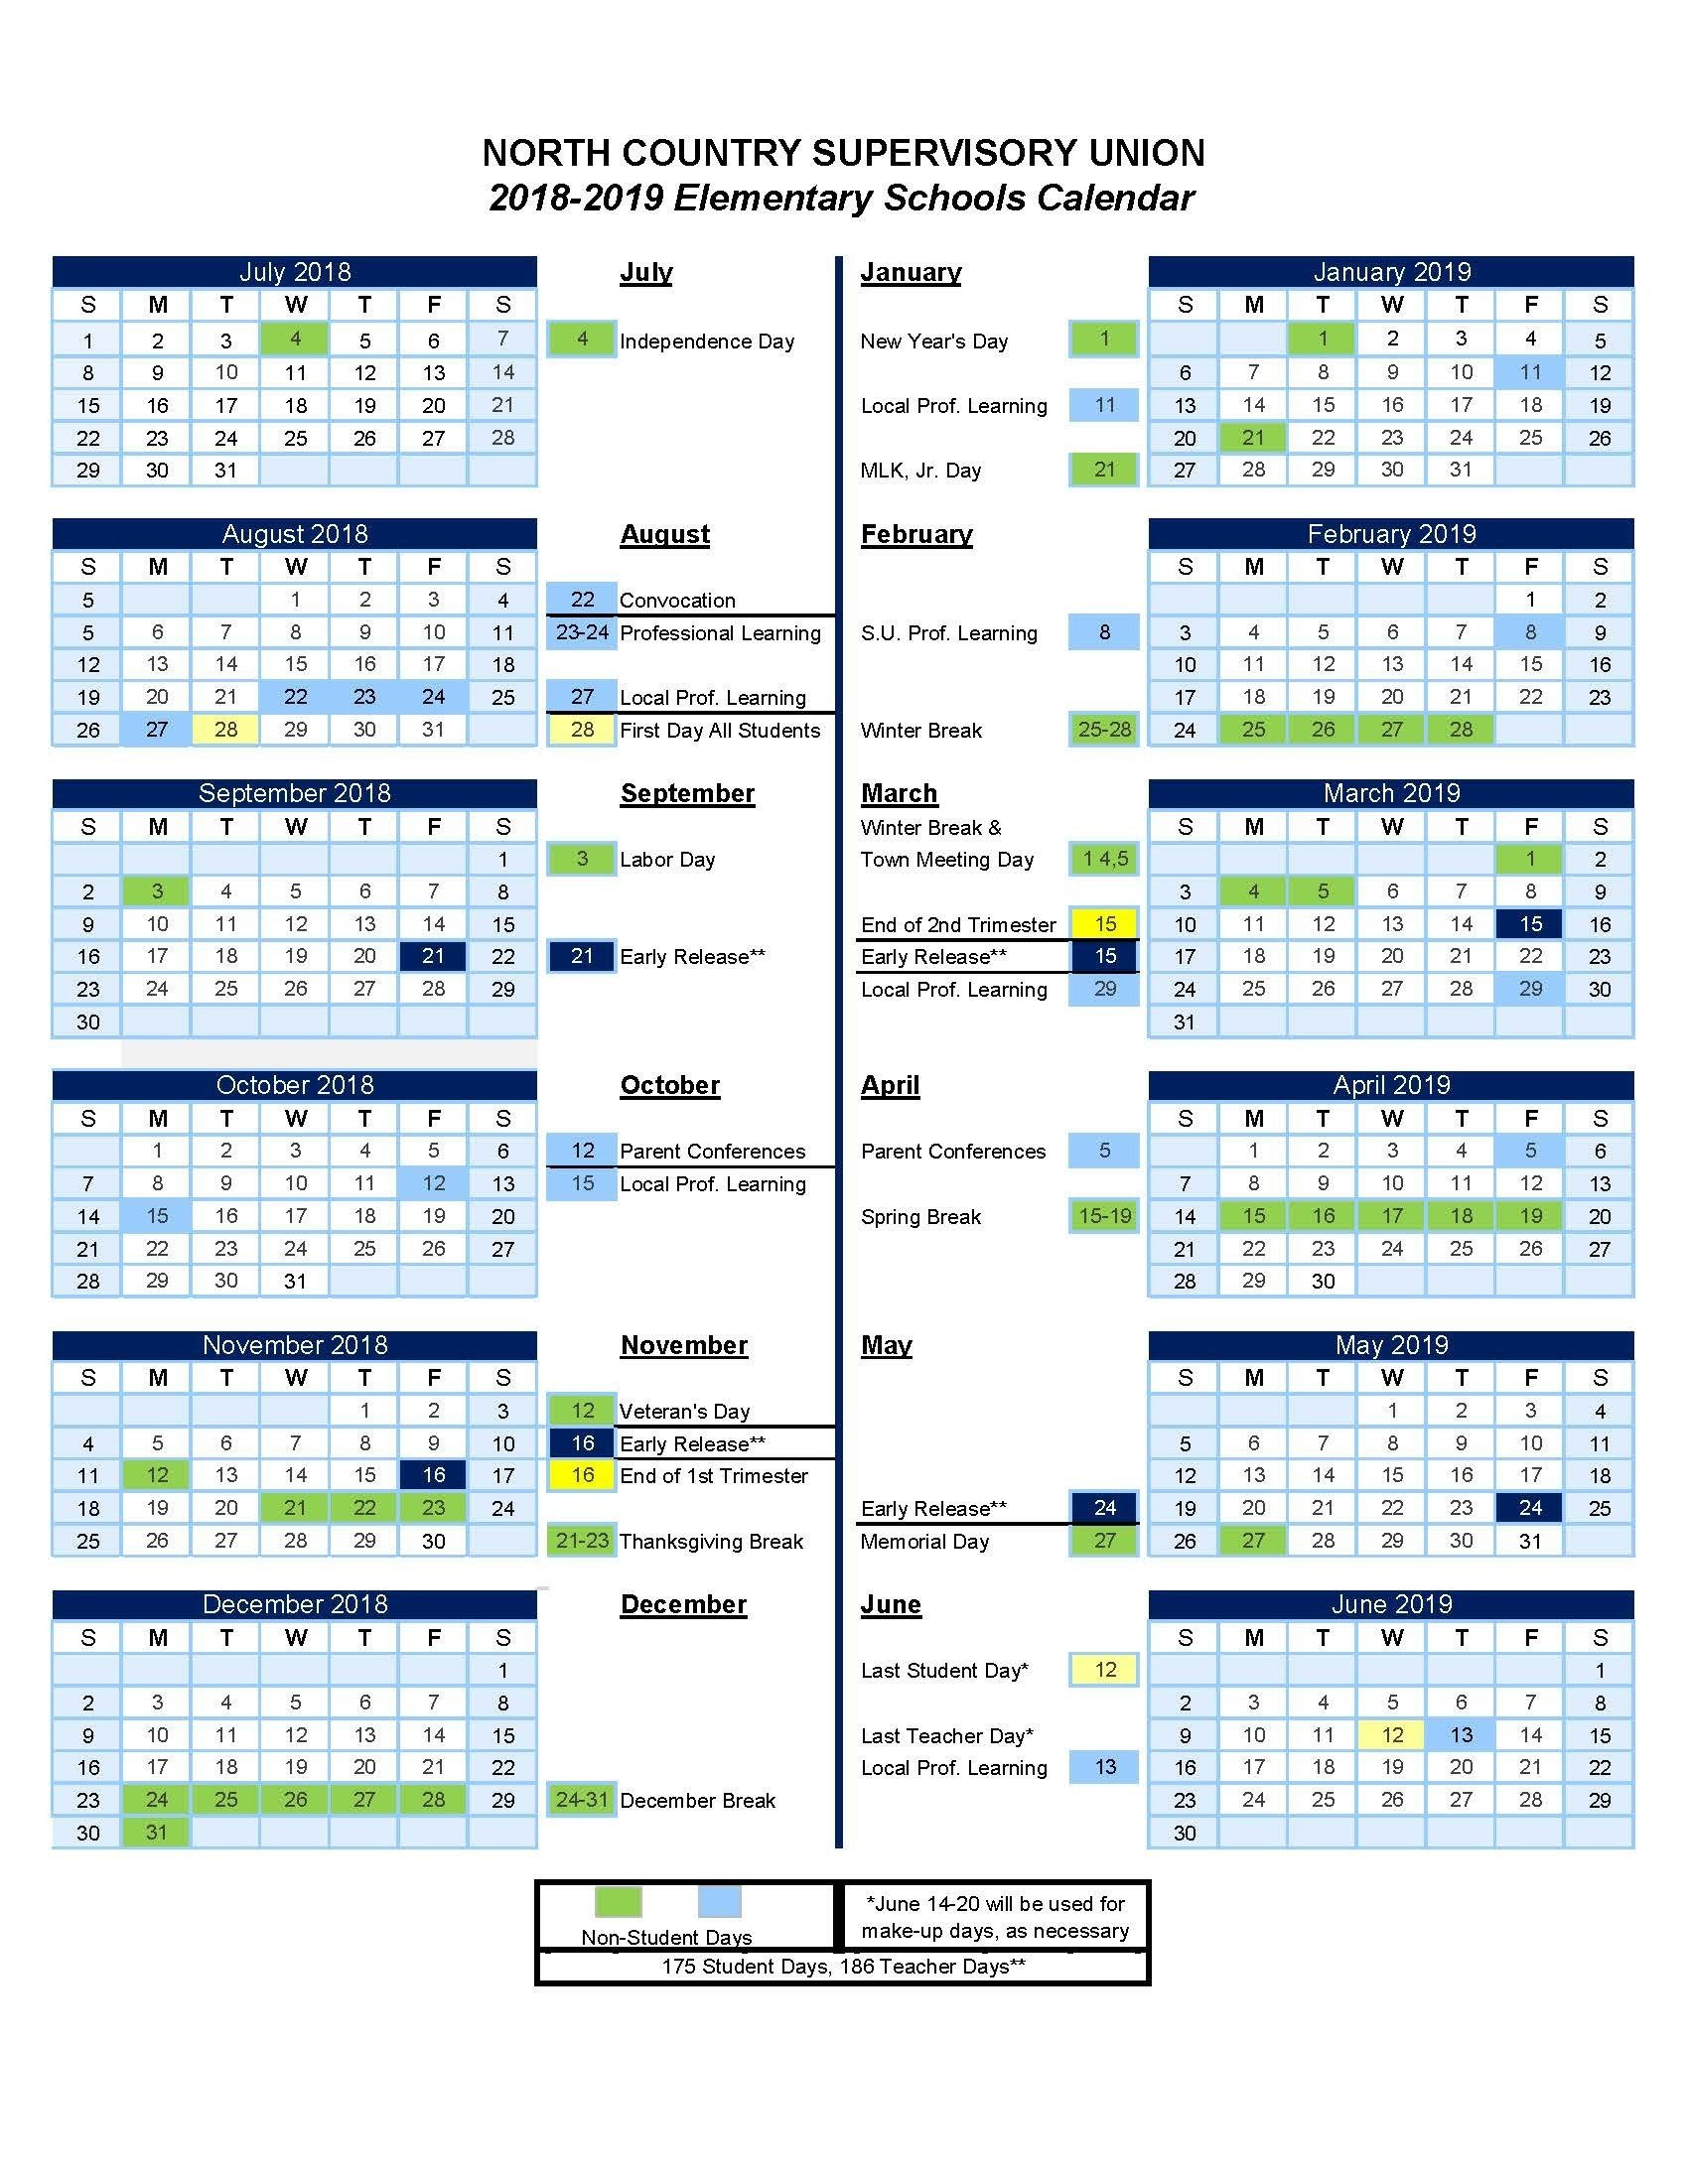 Vt Calendar 2018-2019 Print For Free Of Cost – Calendaro.download Calendar 2019 Vt